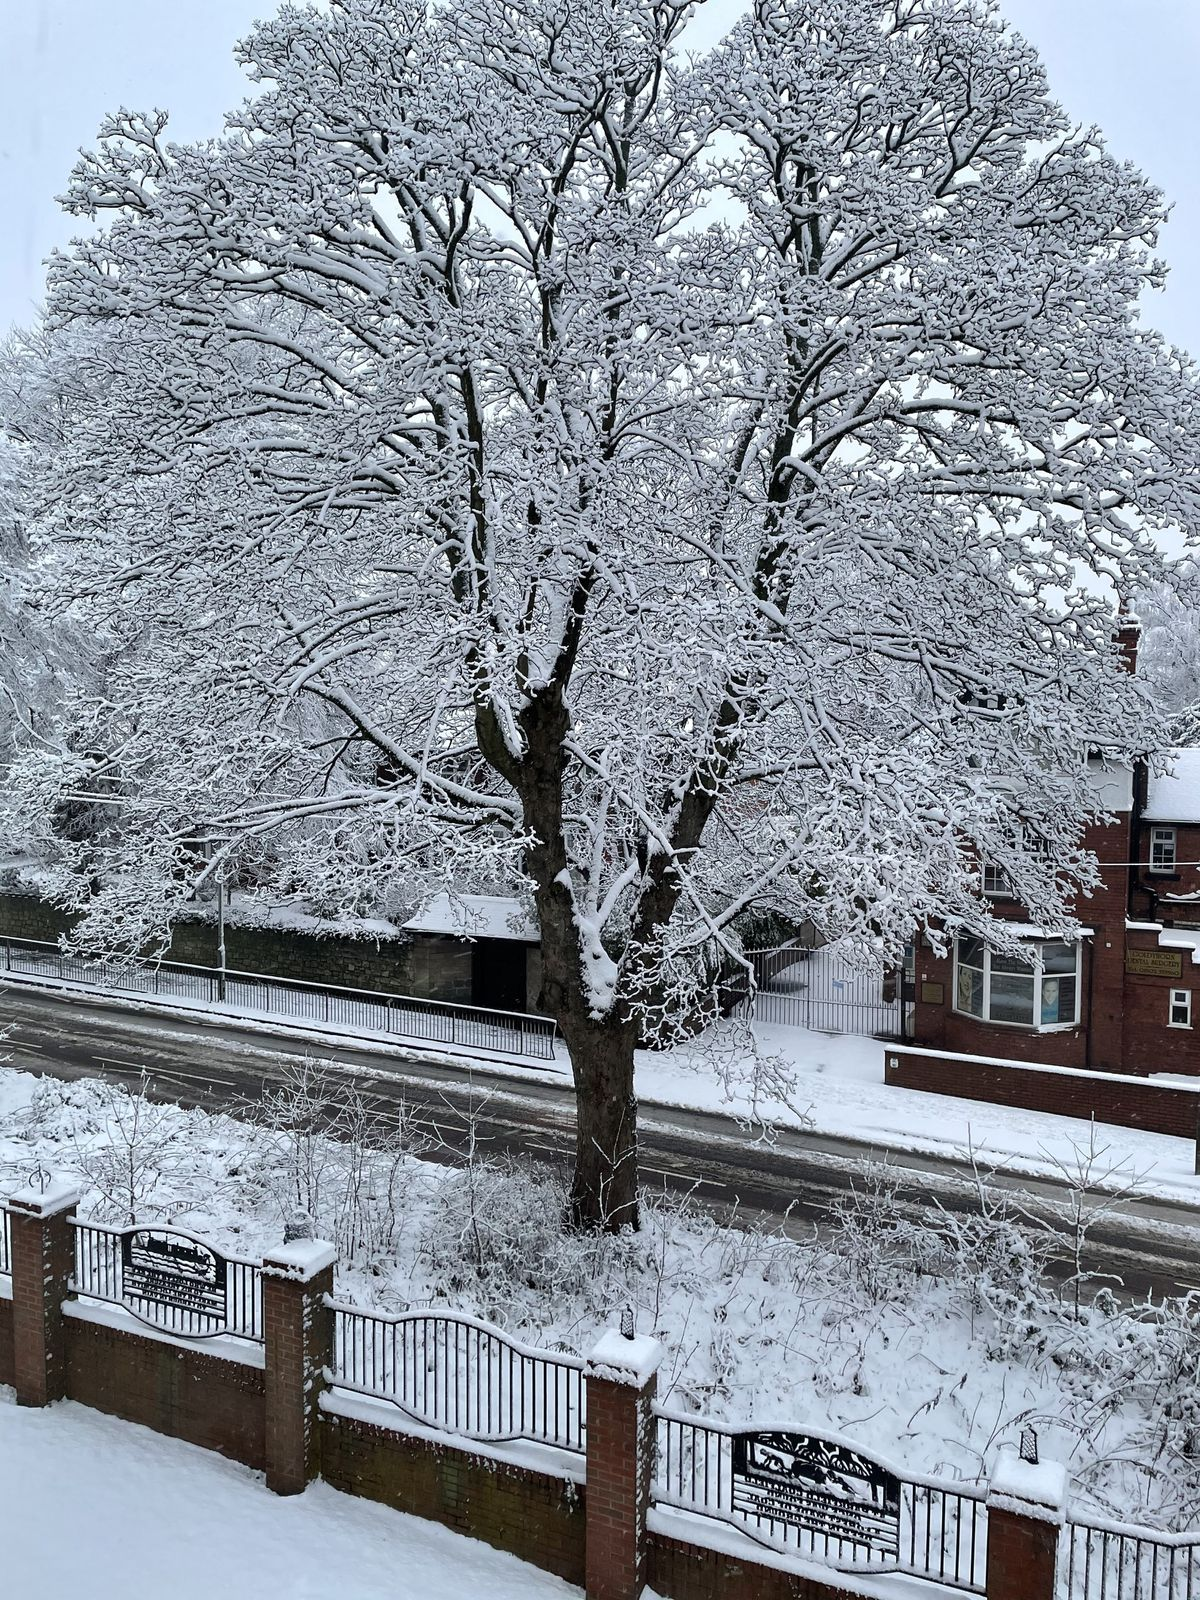 Darren Ford took this Christmas card-style photo of a frosty tree outside his home on Goldthorn Hill, Wolverhampton